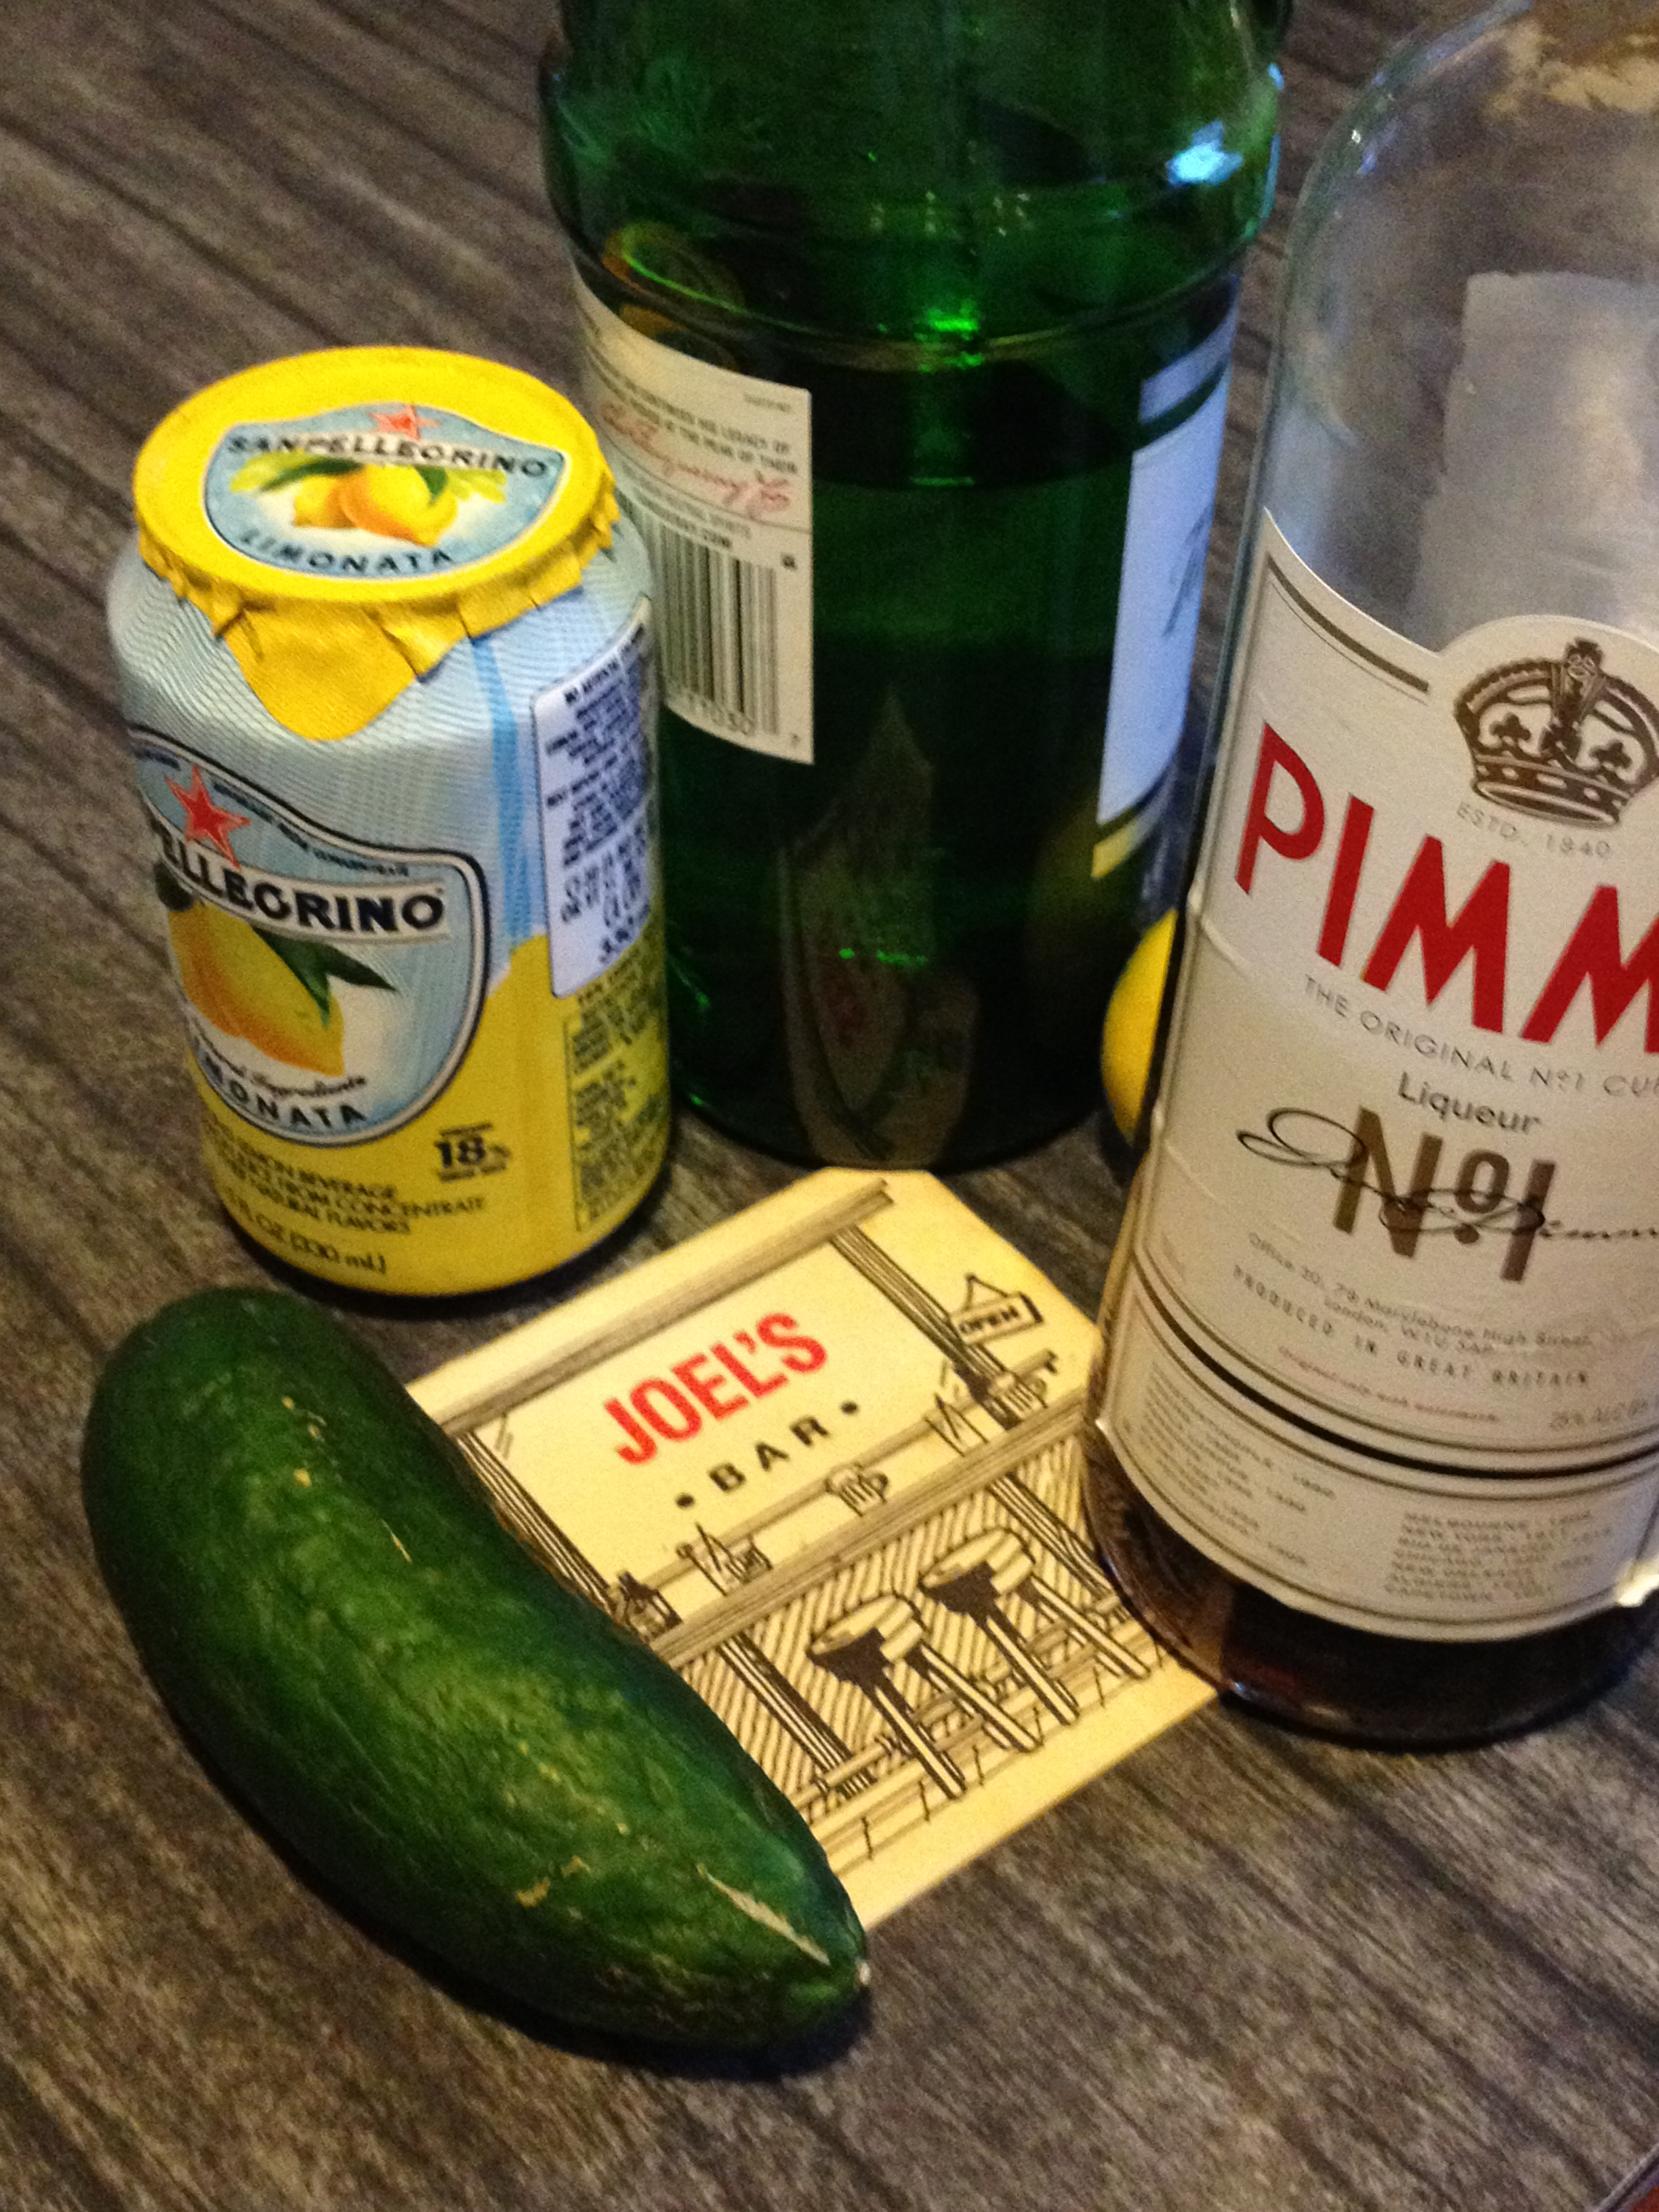 Makings of a Pimm's Cup